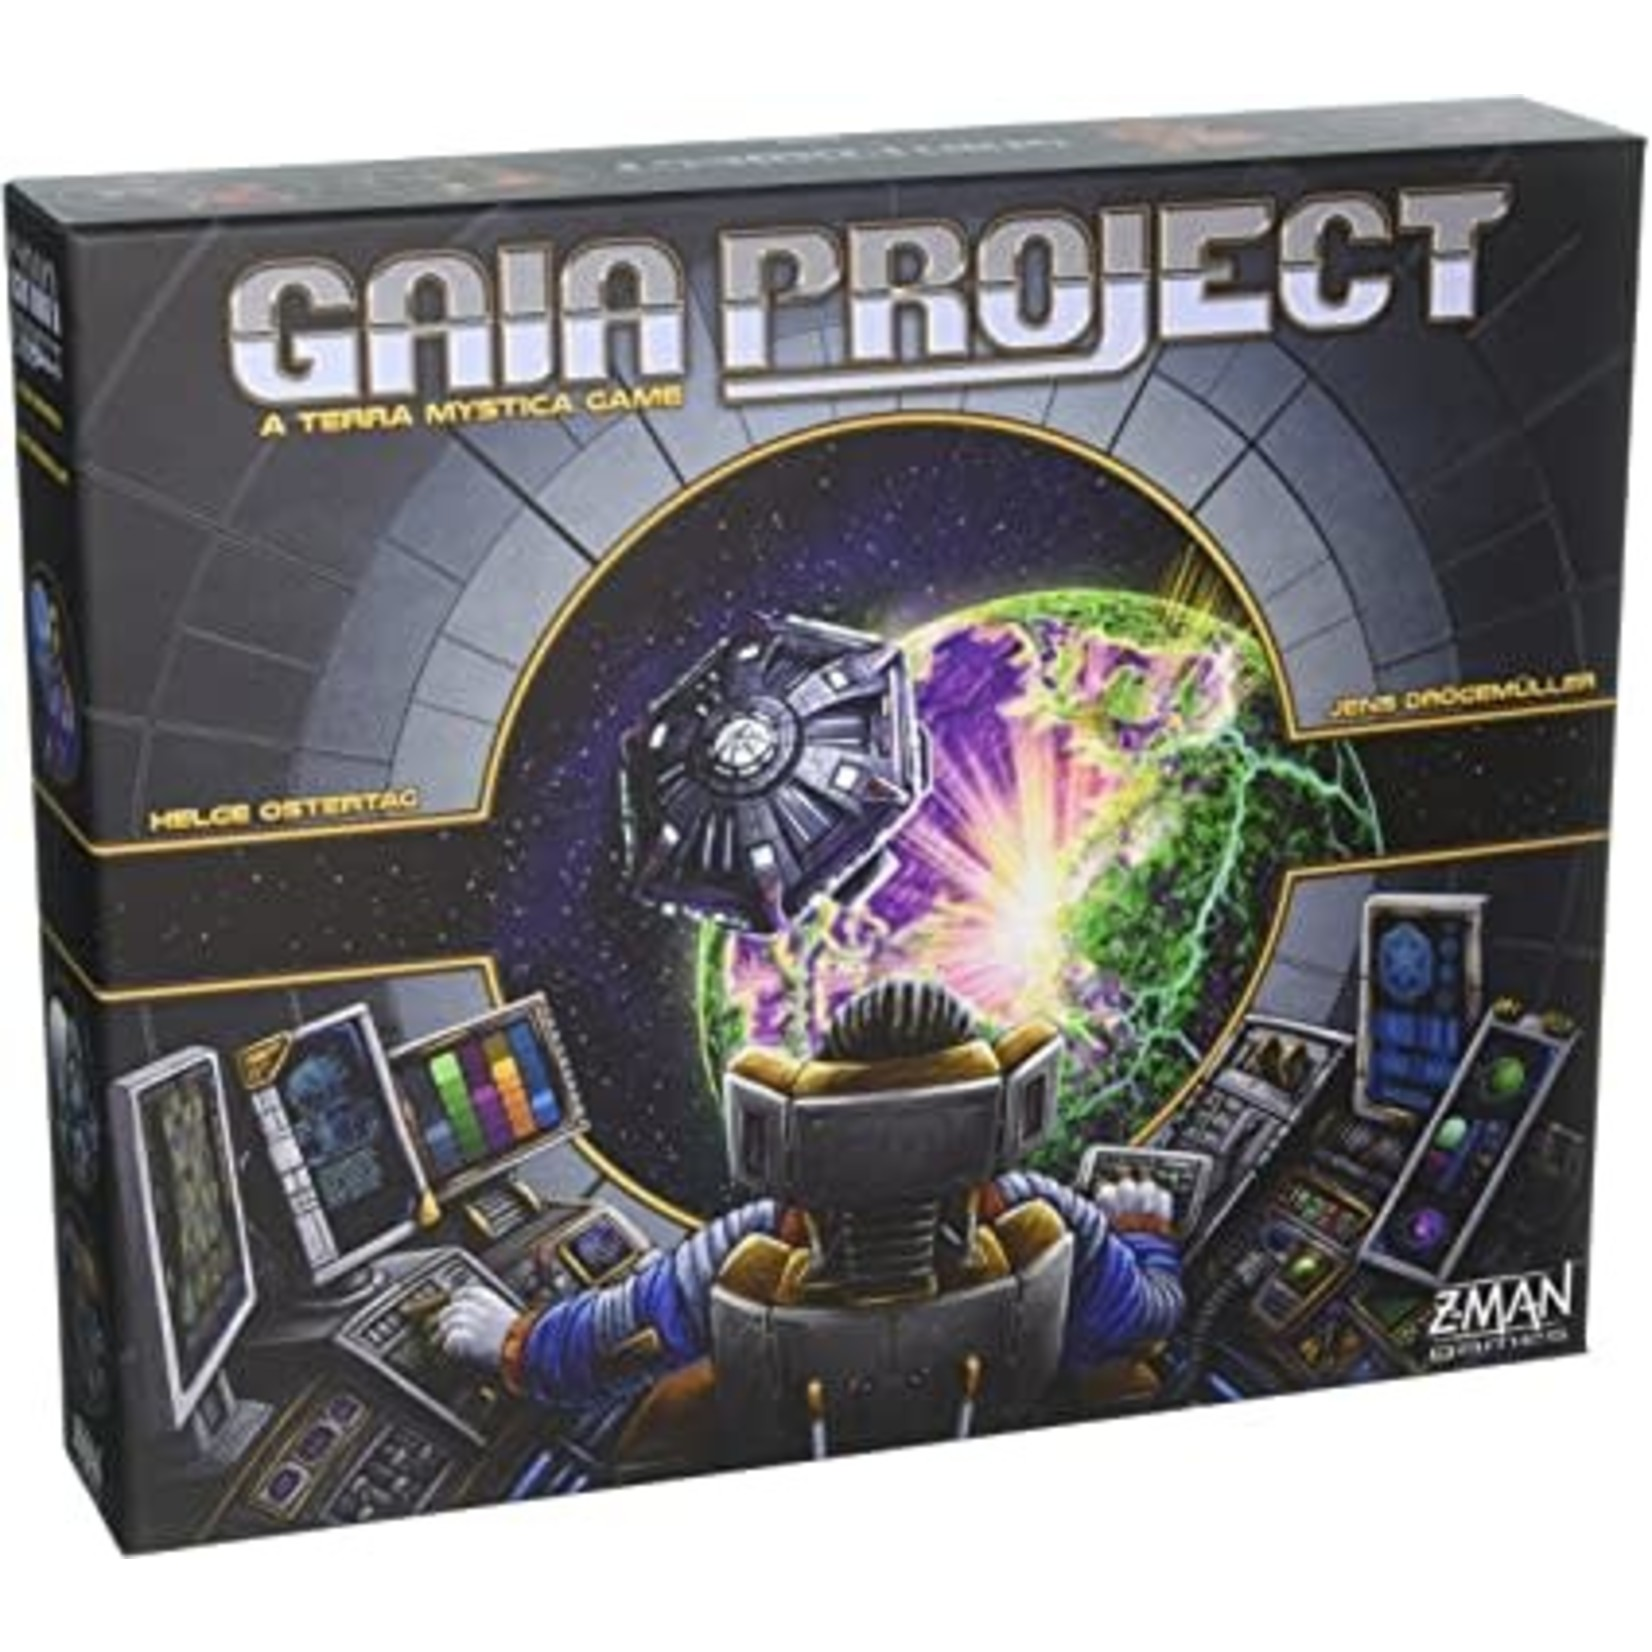 Z-Man Gaia Project: A Terra Mystica Game